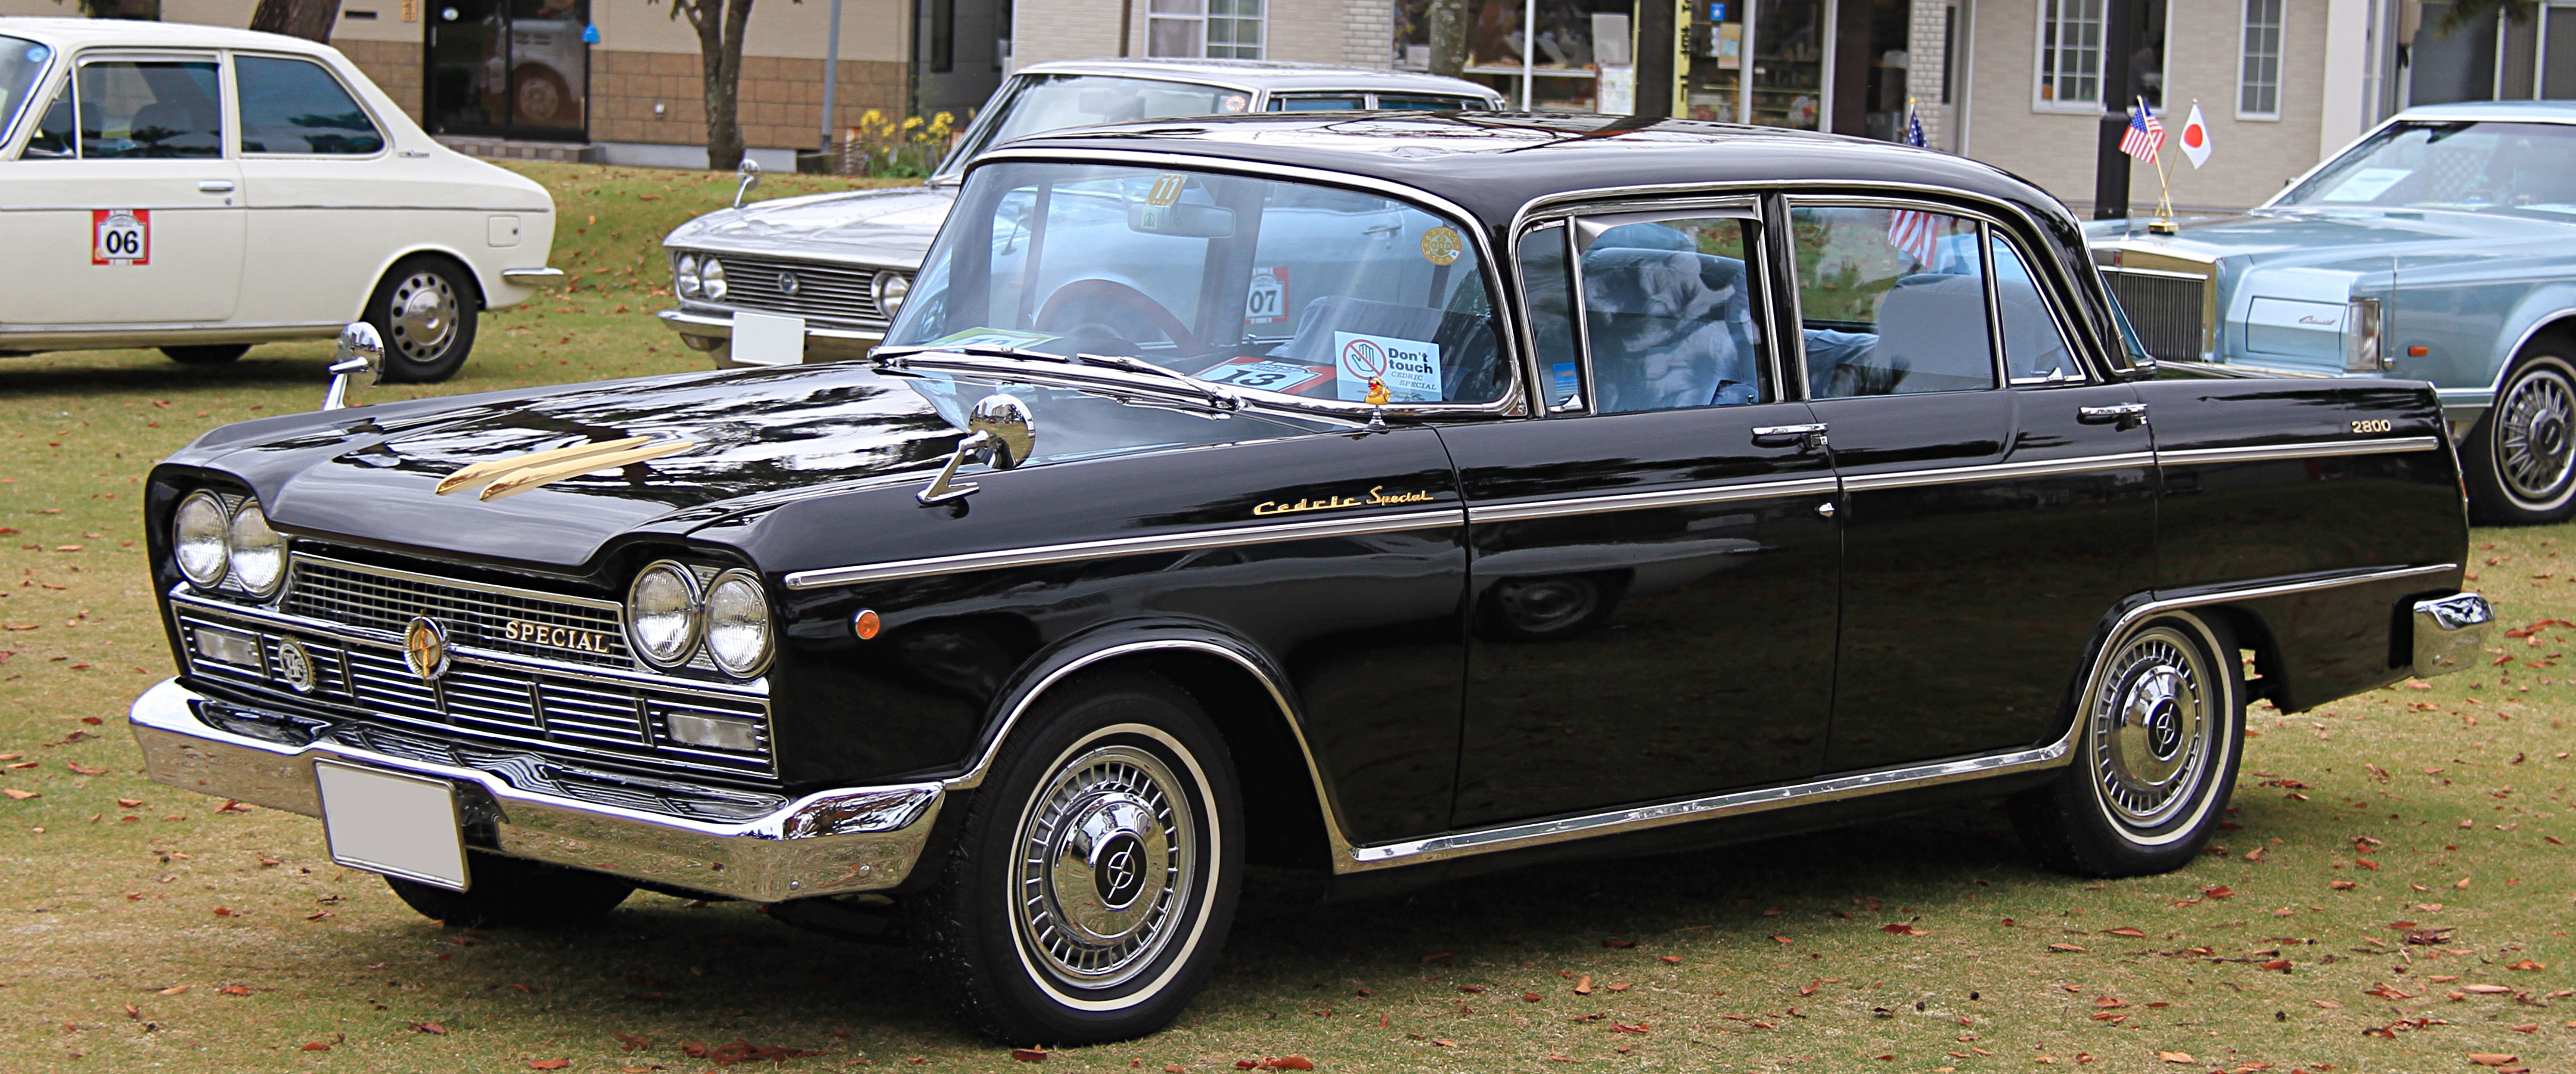 File:1965 Nissan Cedric Special.jpg - Wikimedia Commons